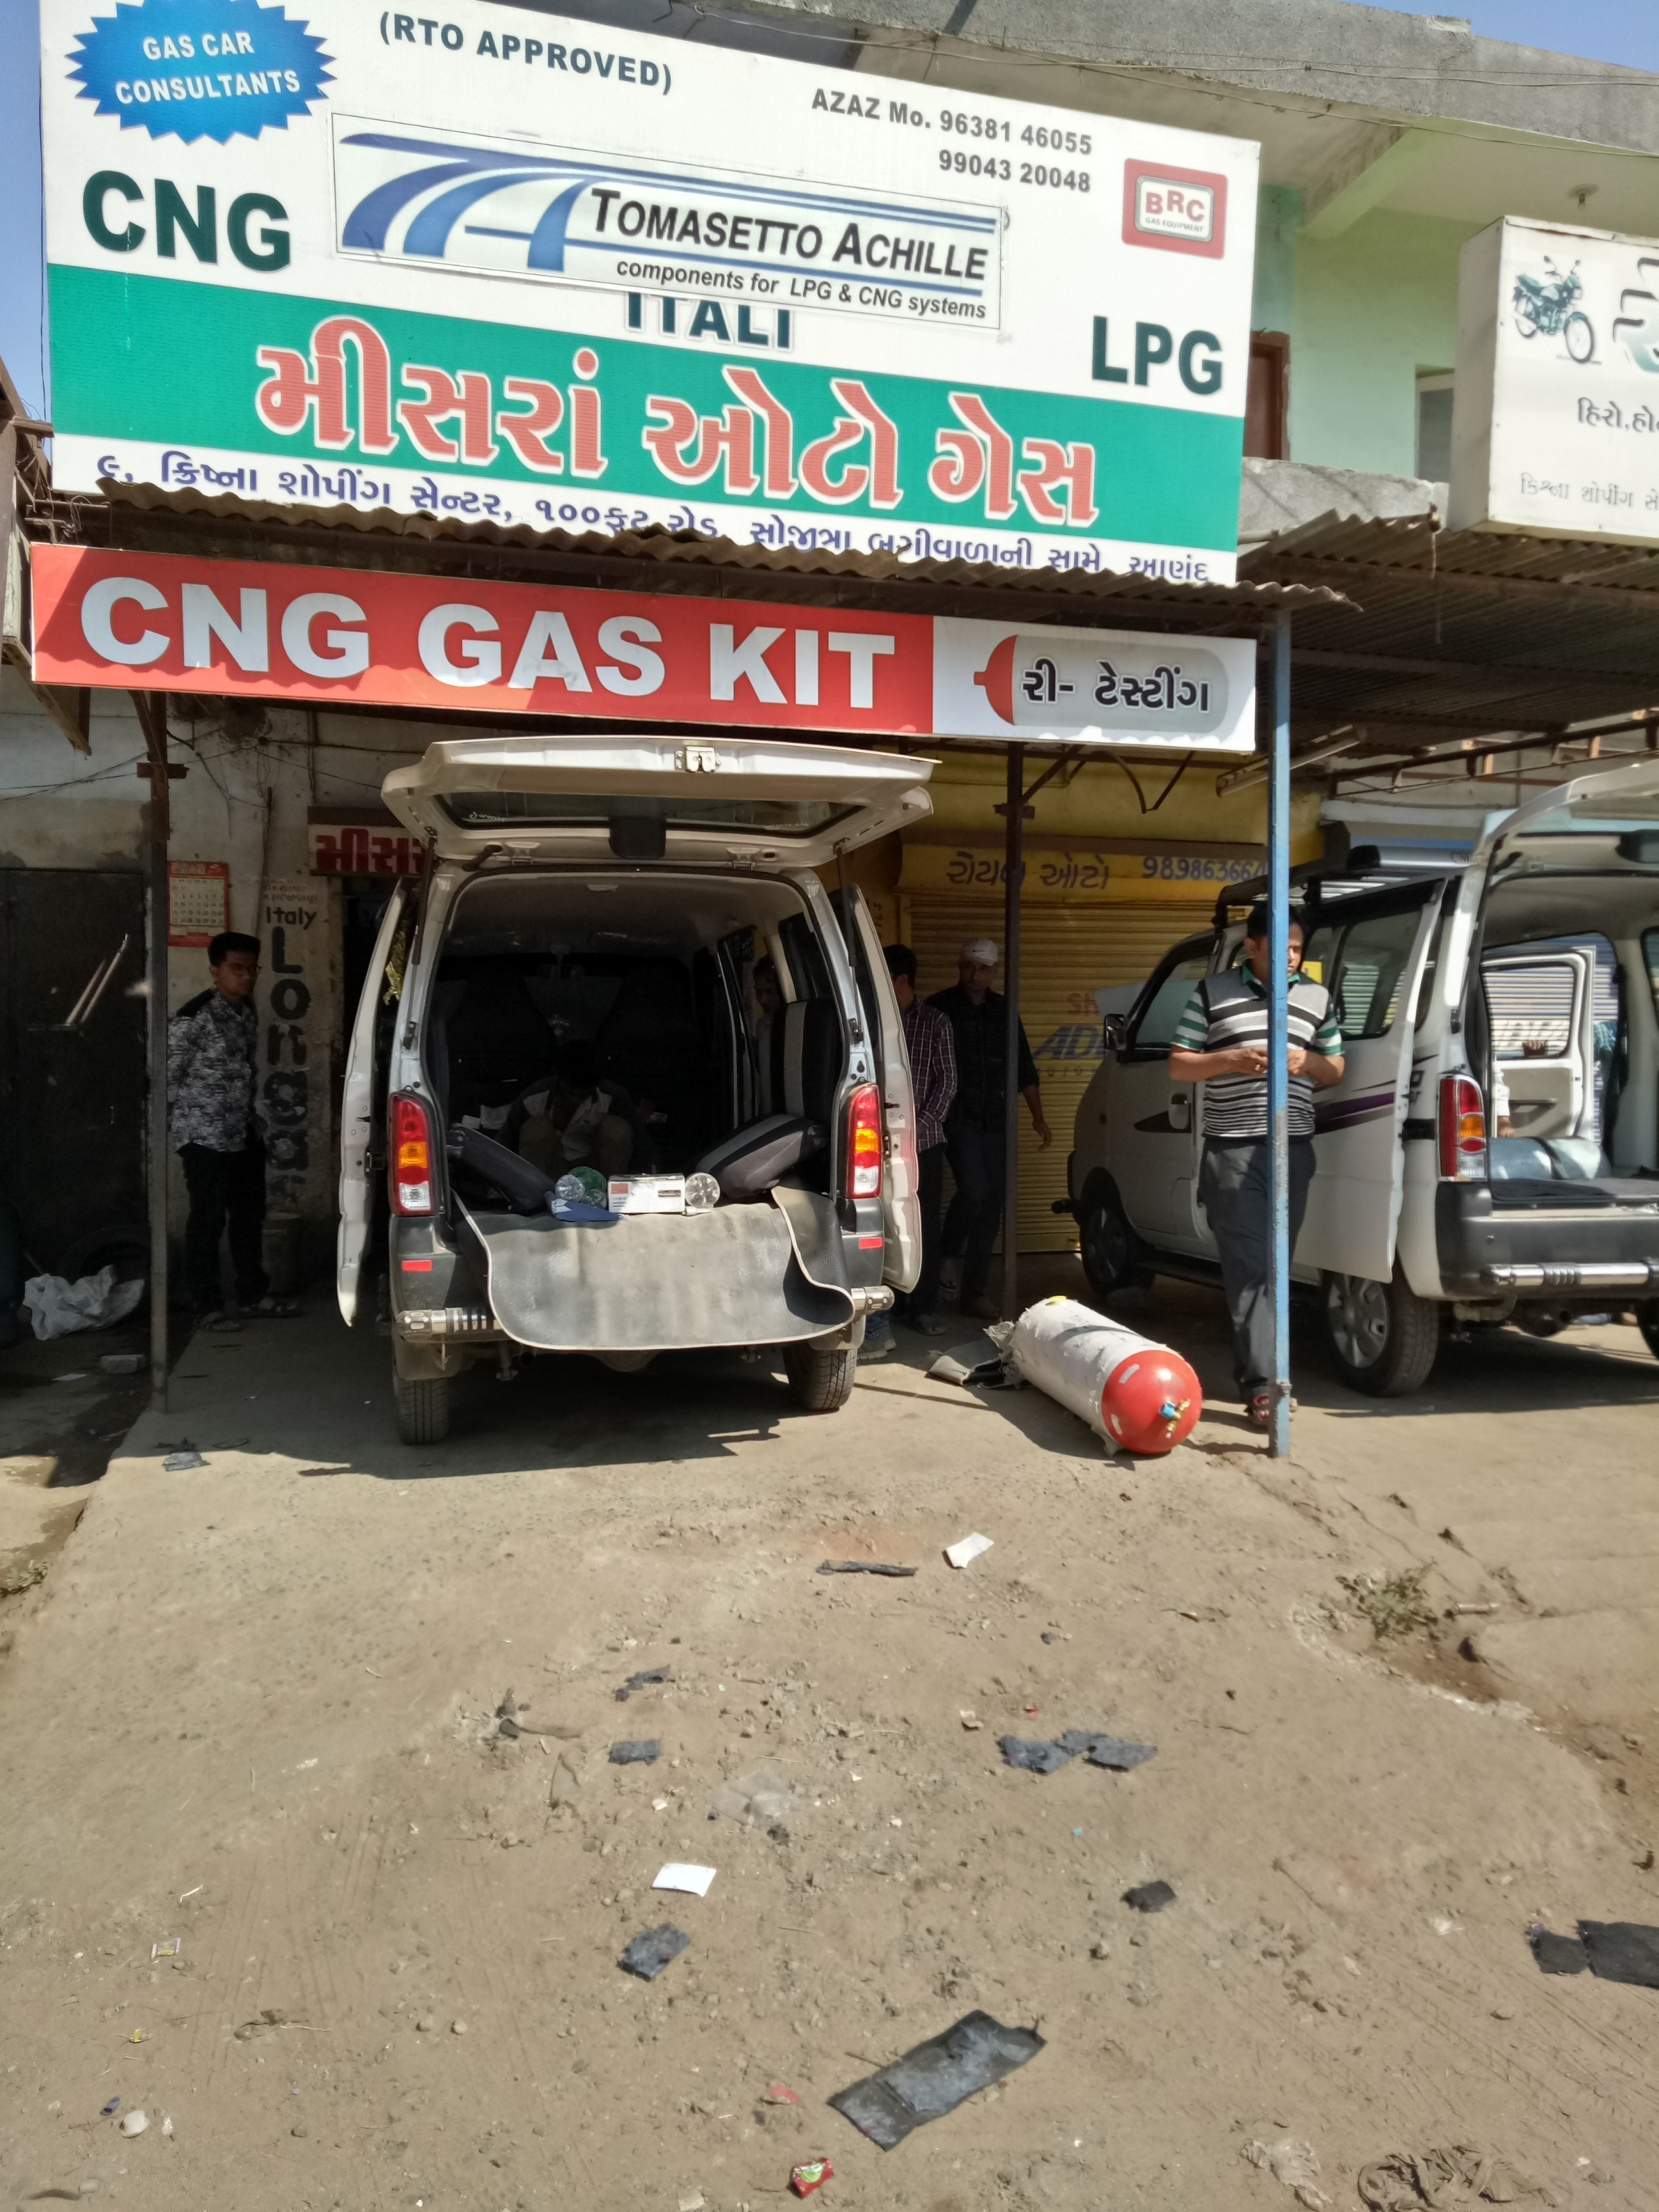 Misra Auto Gas - Leader in CNG - Gujarat - CNG Kit fitting ...